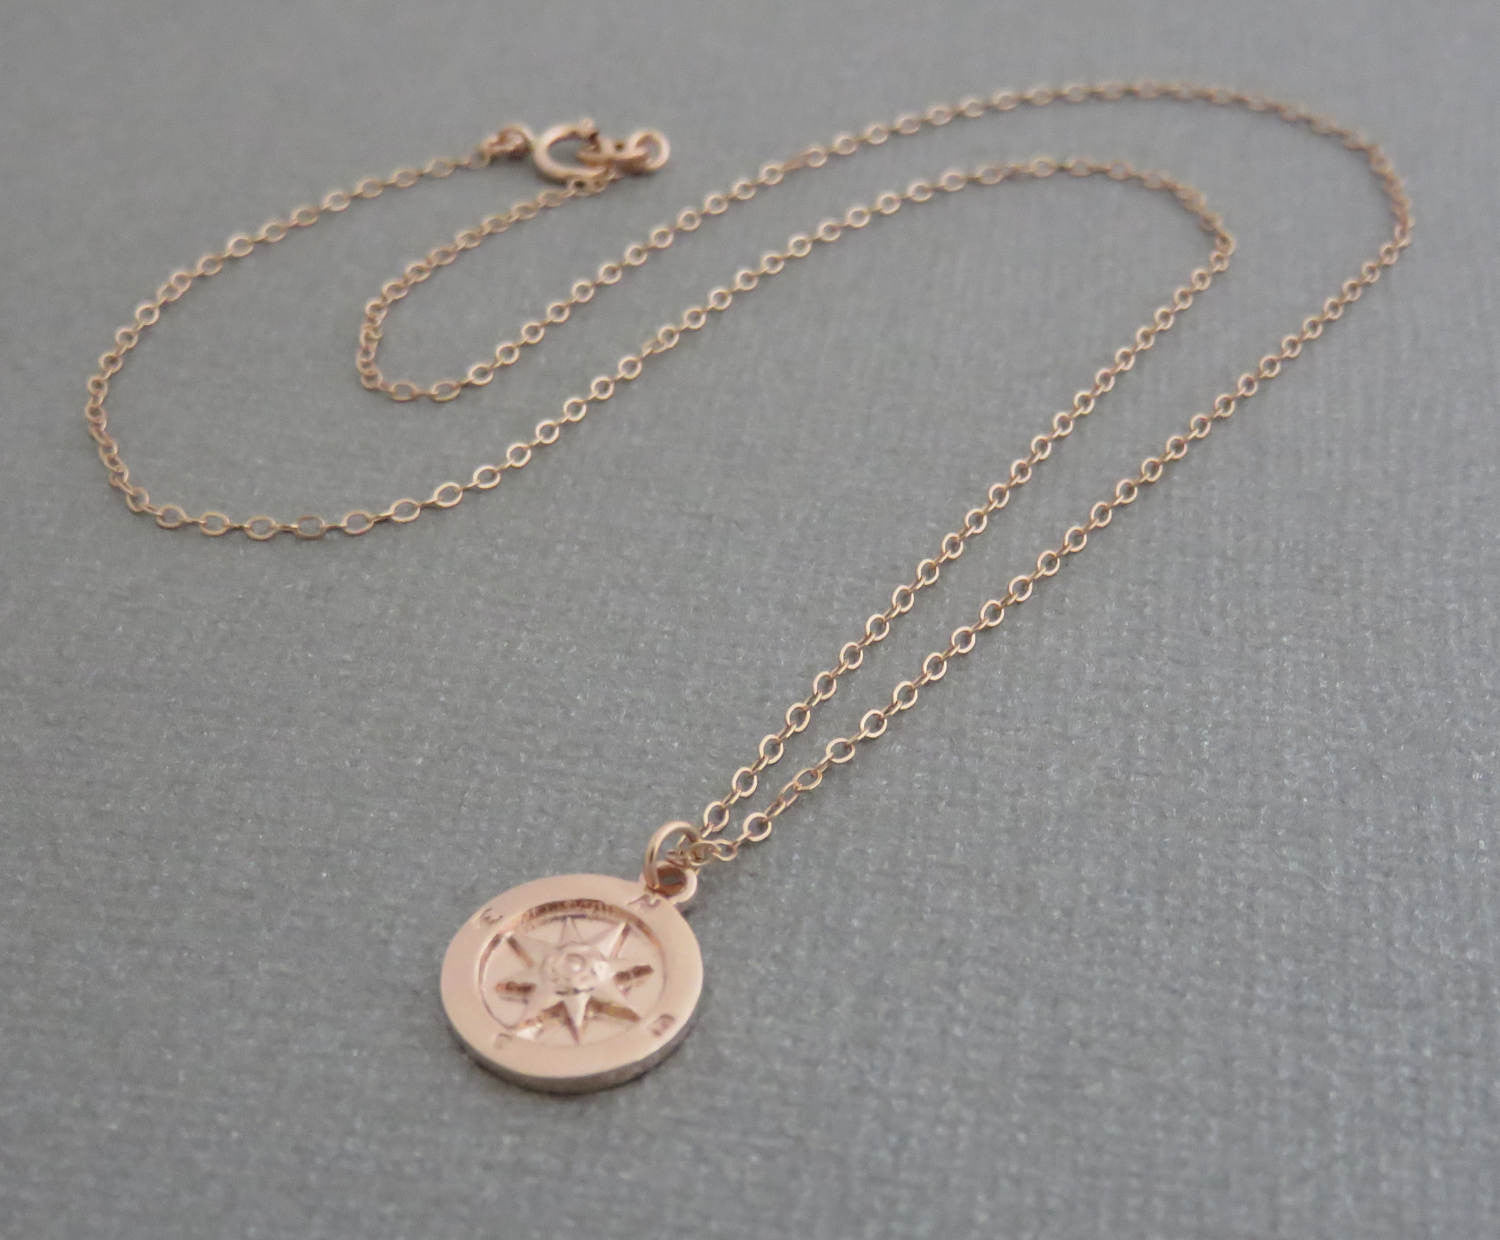 necklace original cassiopi com product notonthehighstreet compass by personalised